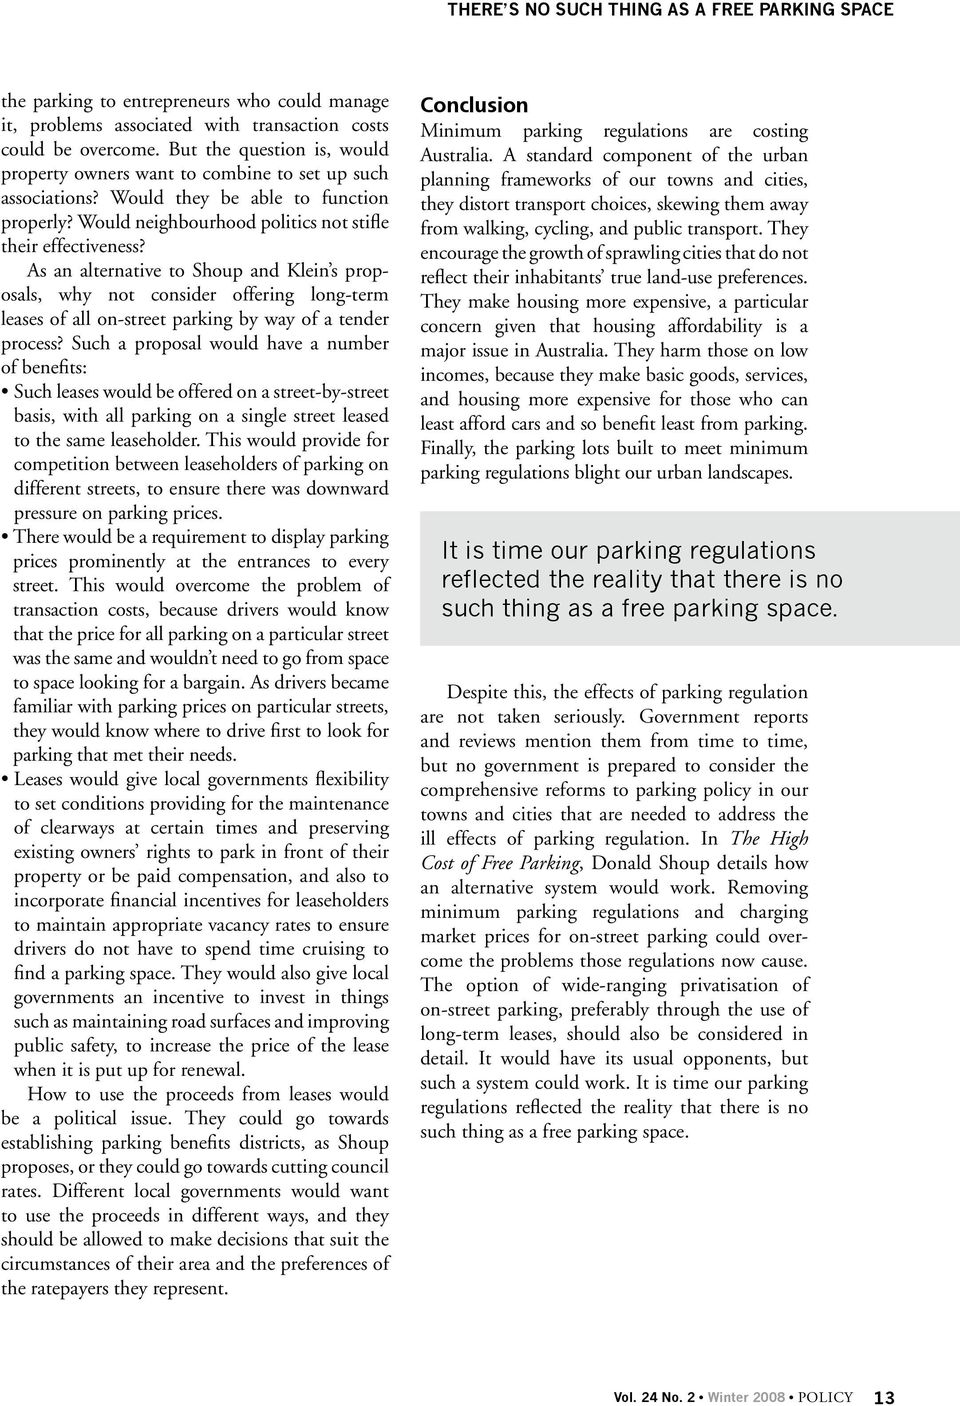 As an alternative to Shoup and Klein s proposals, why not consider offering long-term leases of all on-street parking by way of a tender process?